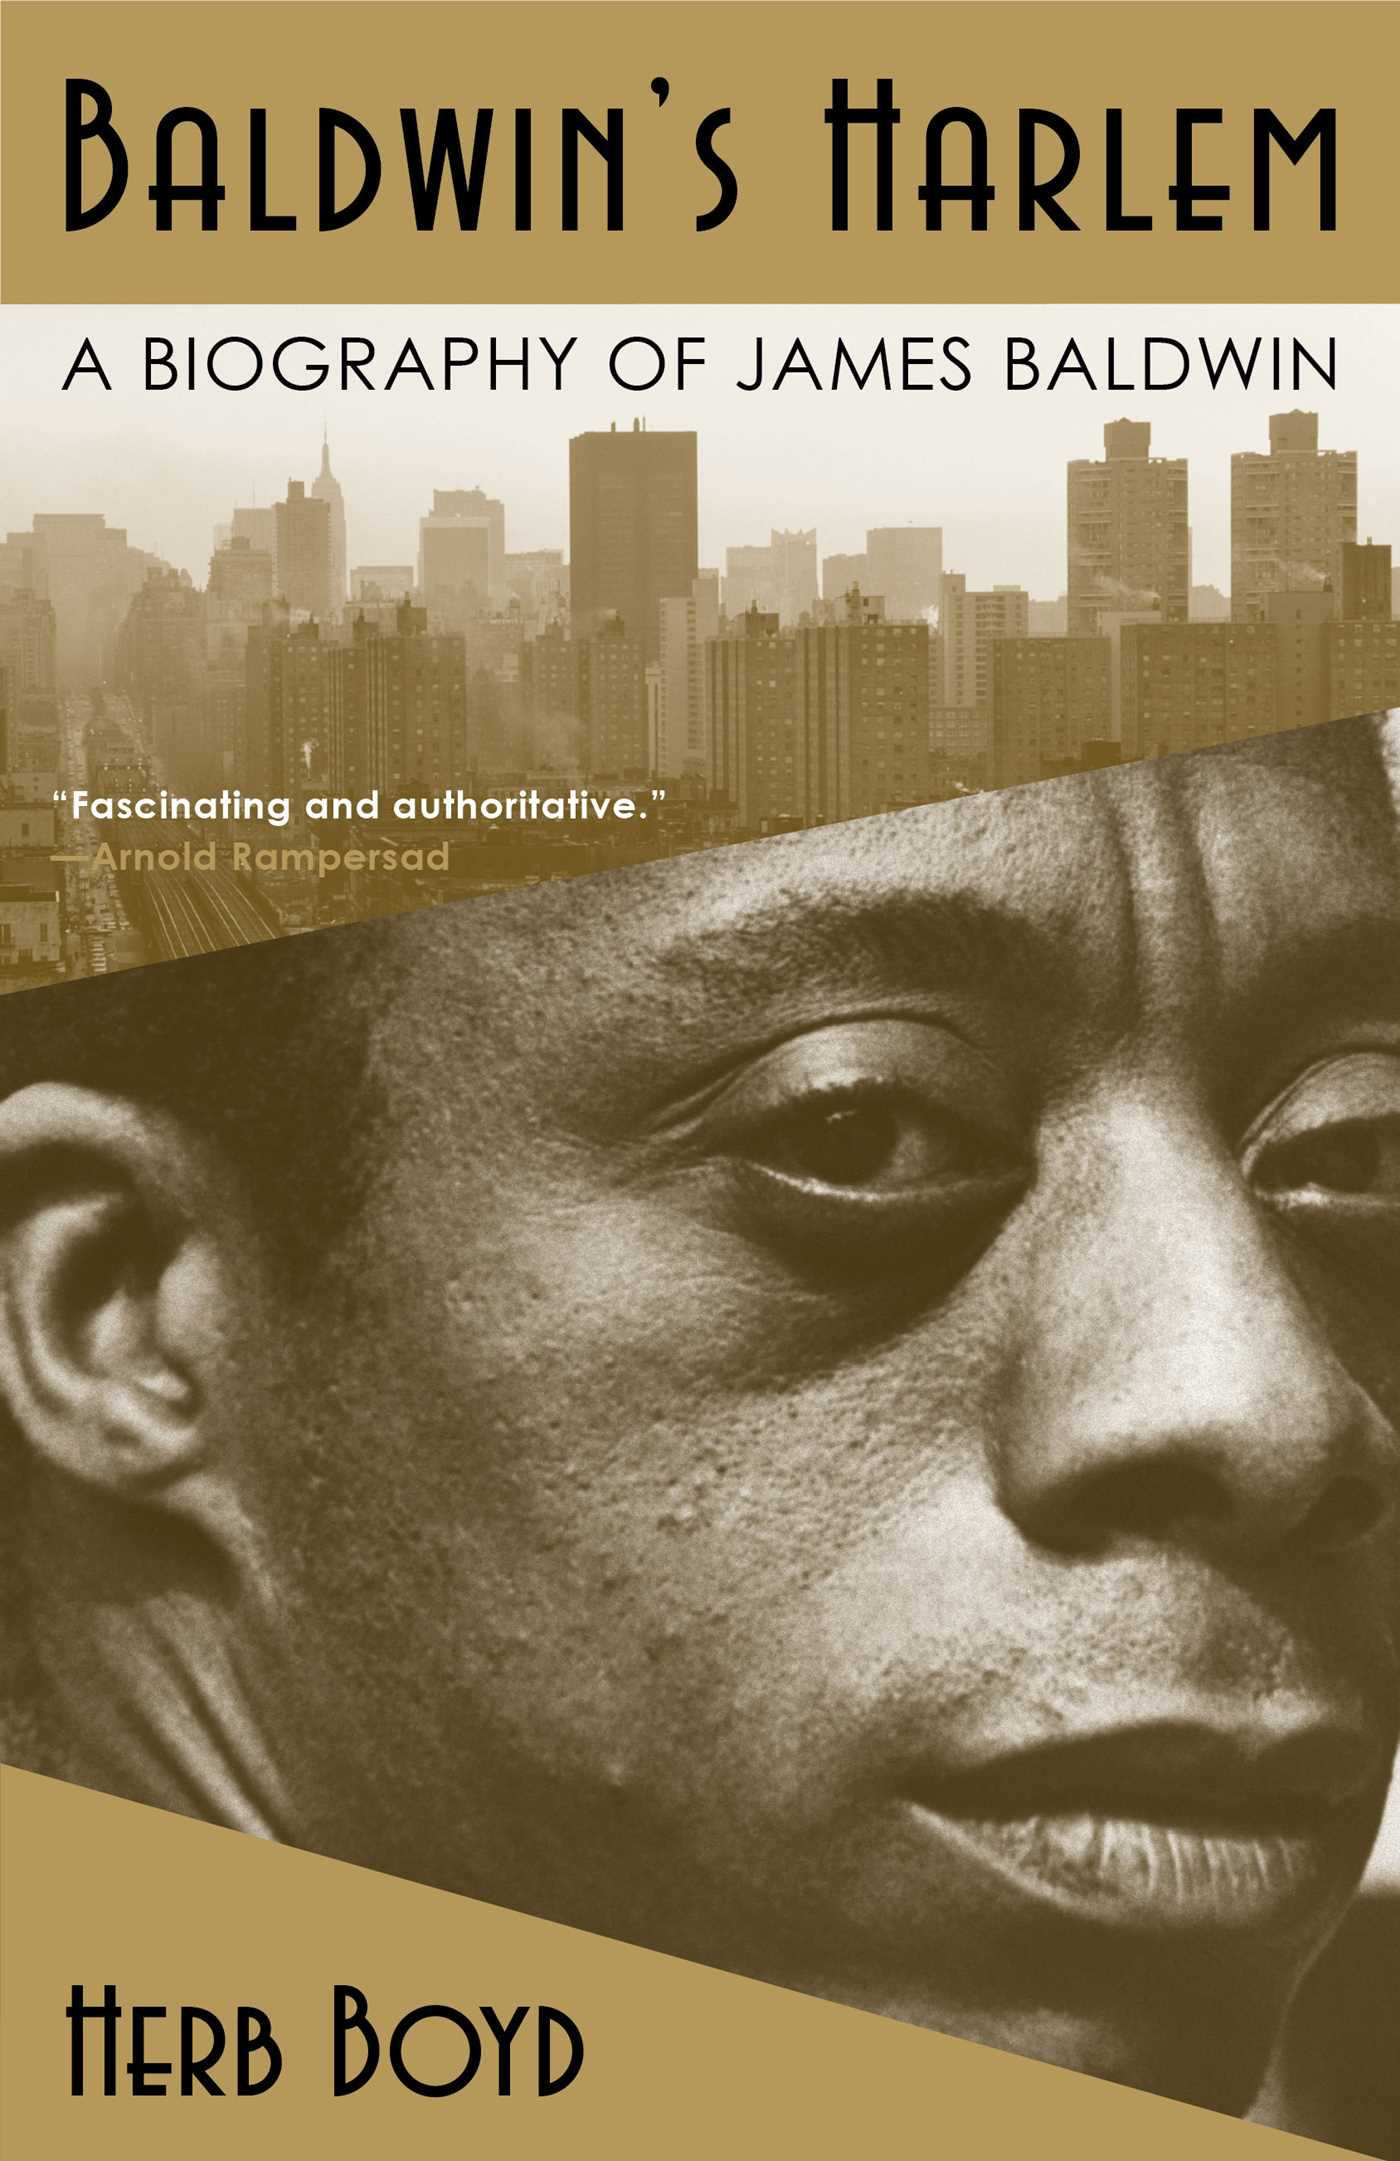 an introduction to the life of baldwin harlem Baldwin's harlem: a biography of james baldwin, by author and journalist herb boyd, is an amalgam of biography, literary criticism, and interviews that provide an illuminating look at baldwin's life through the lens of his actual and emblematic associations with harlem.